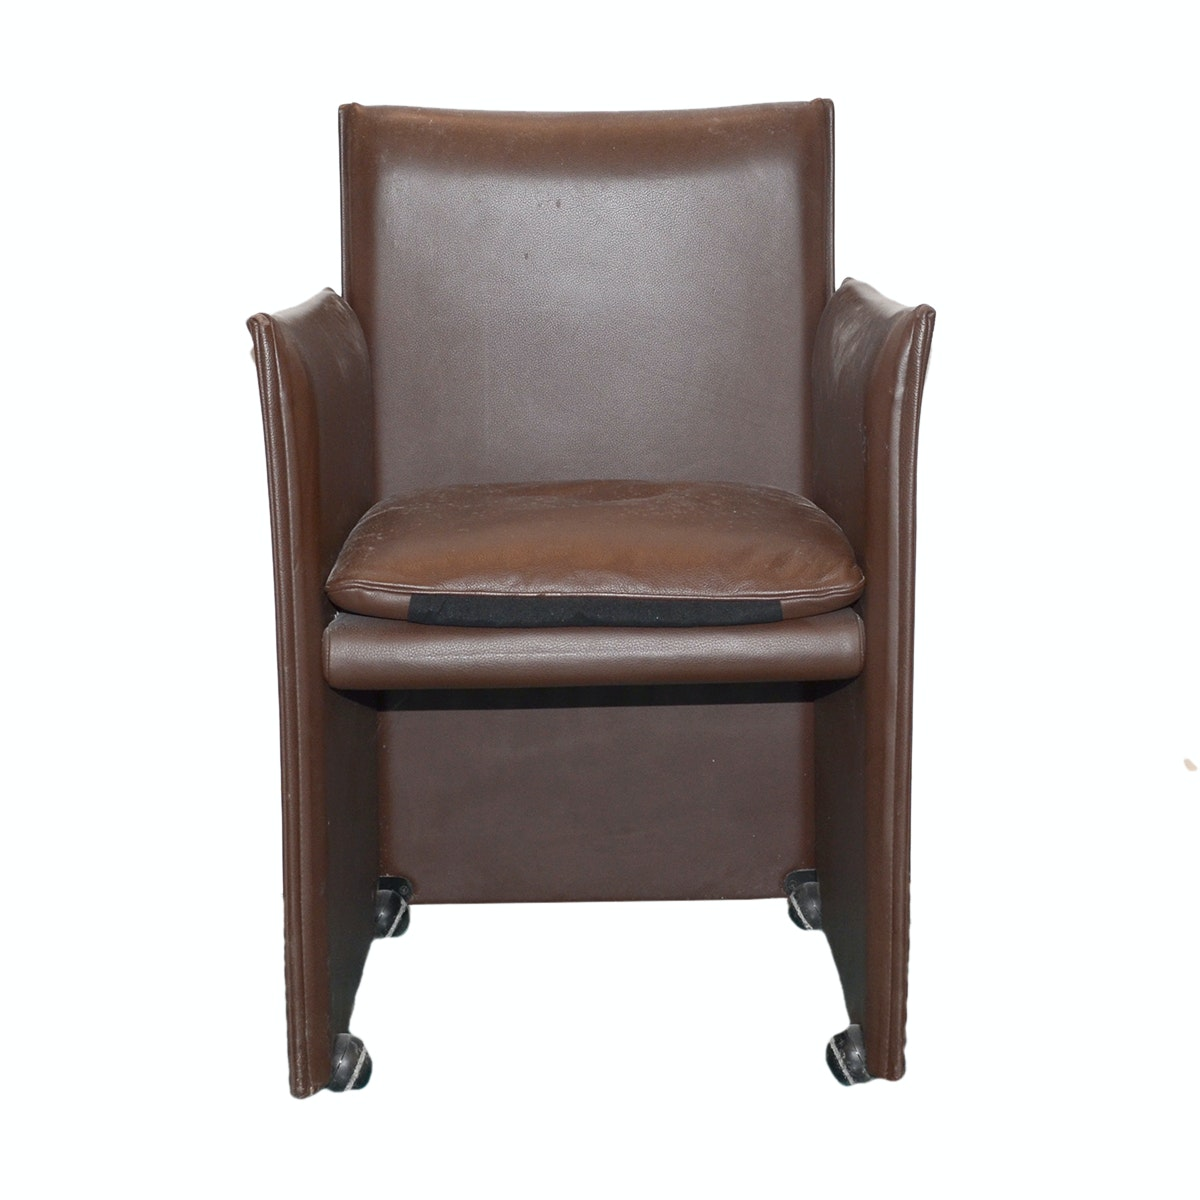 Modernist Style Brown Leather Armchair by Cassina